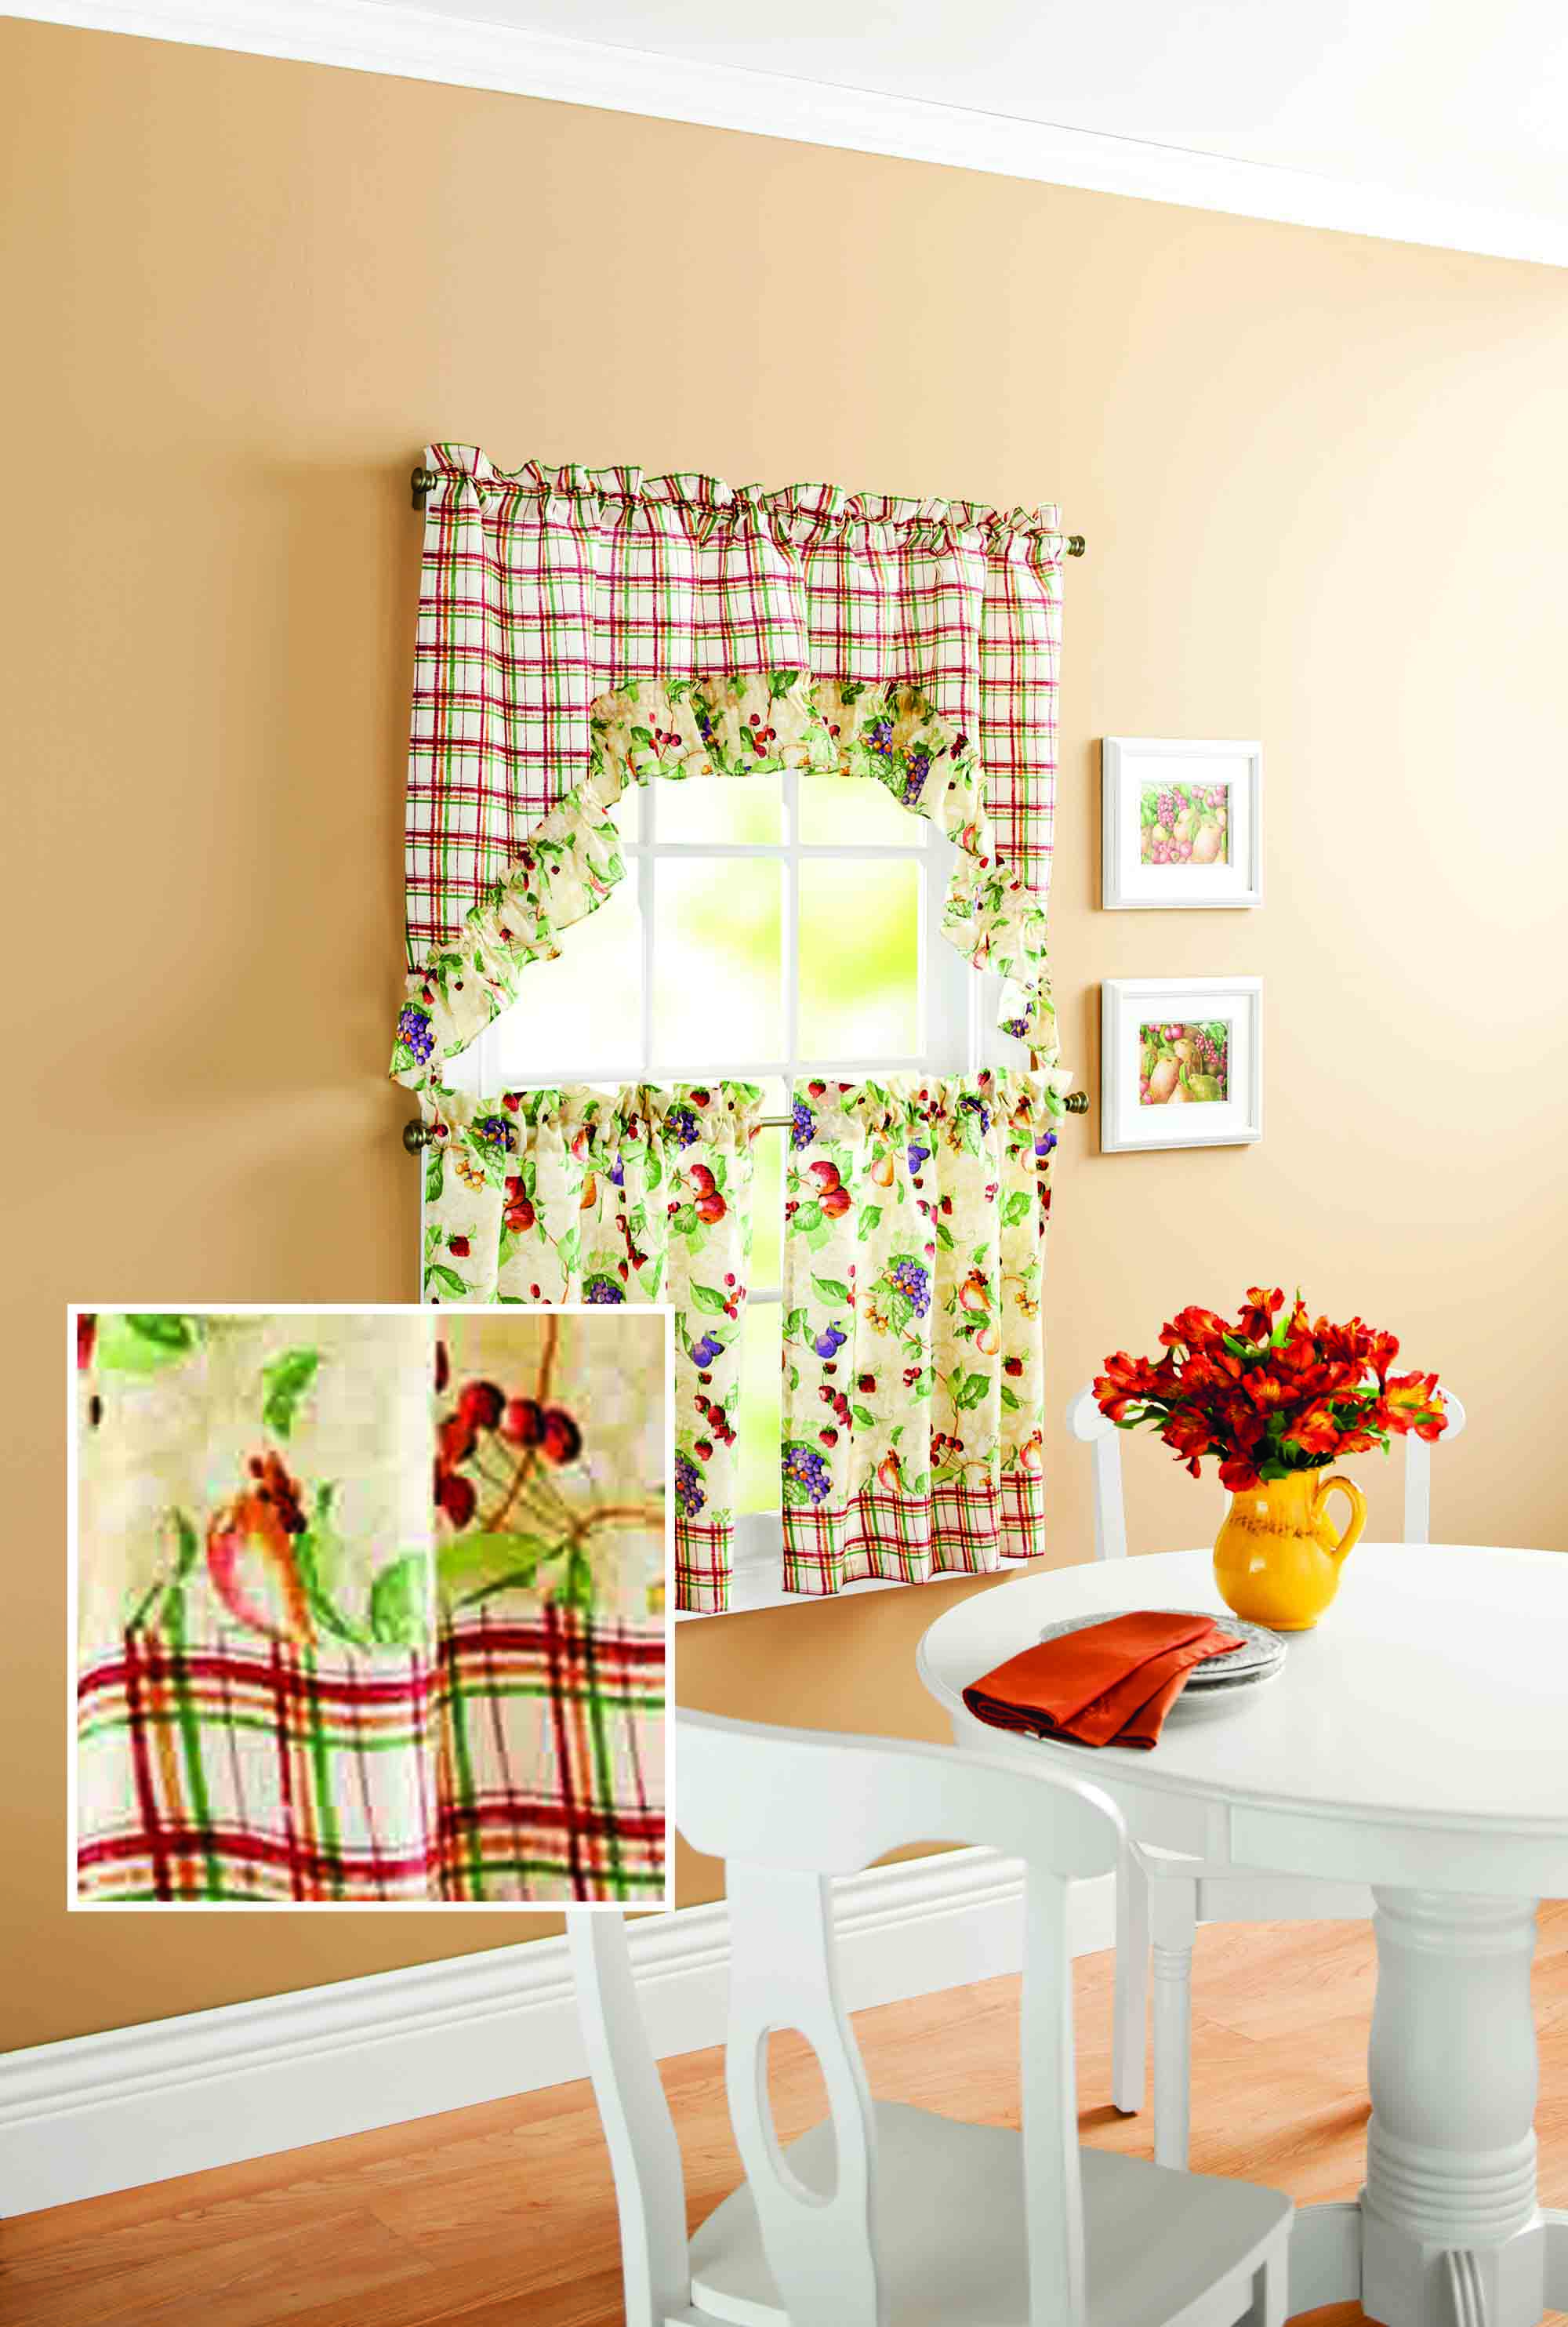 Mainstays Orchard Fruit Kitchen Curtain Set - Walmart.com